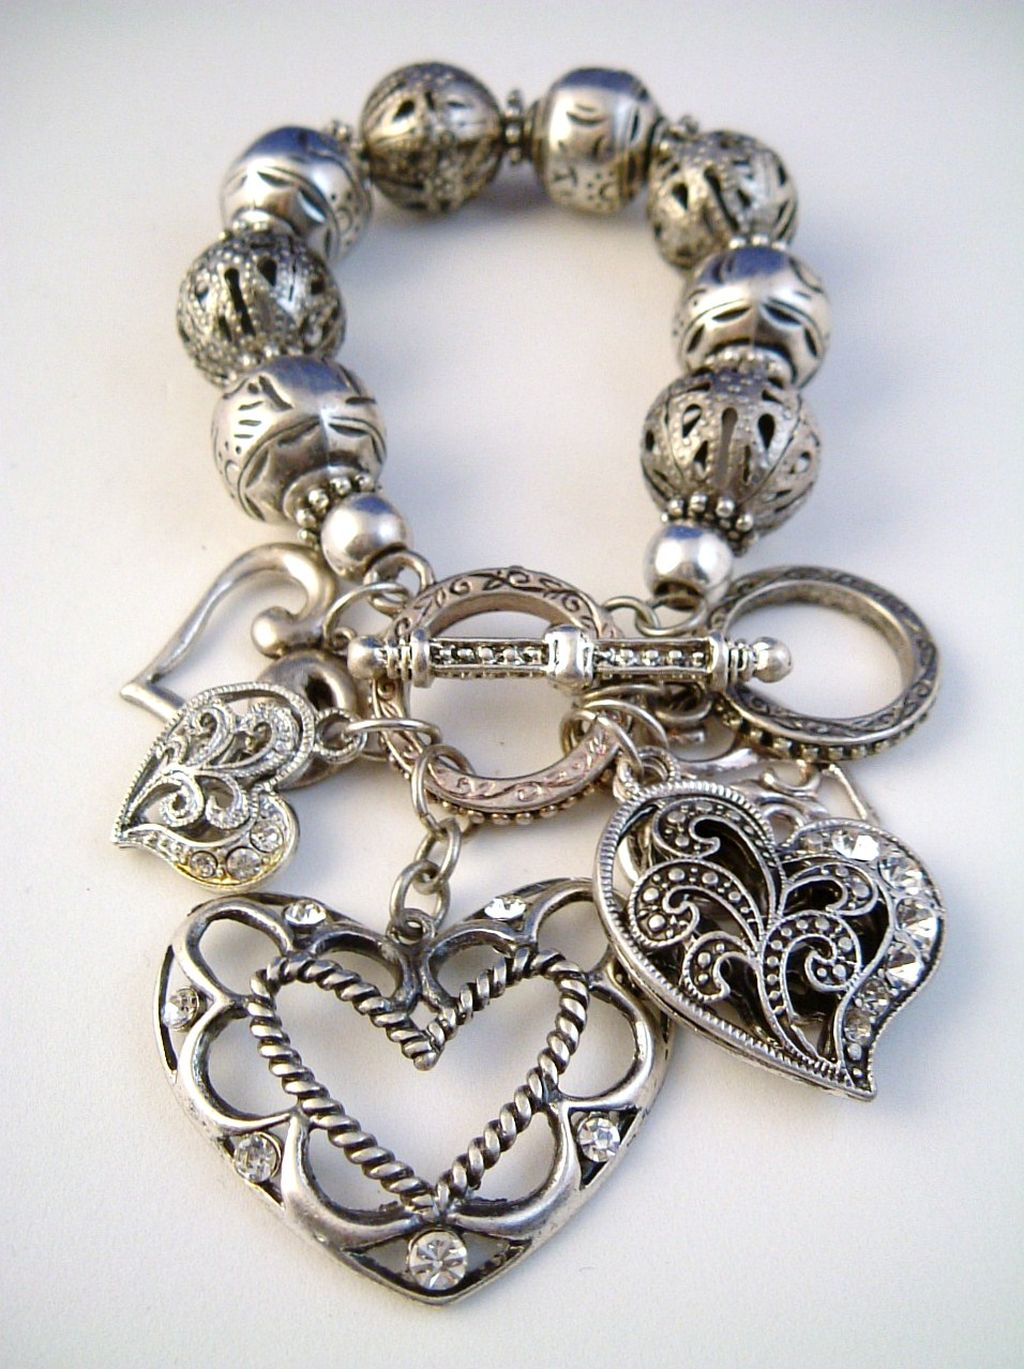 Can't talk Vintage heart bracelet